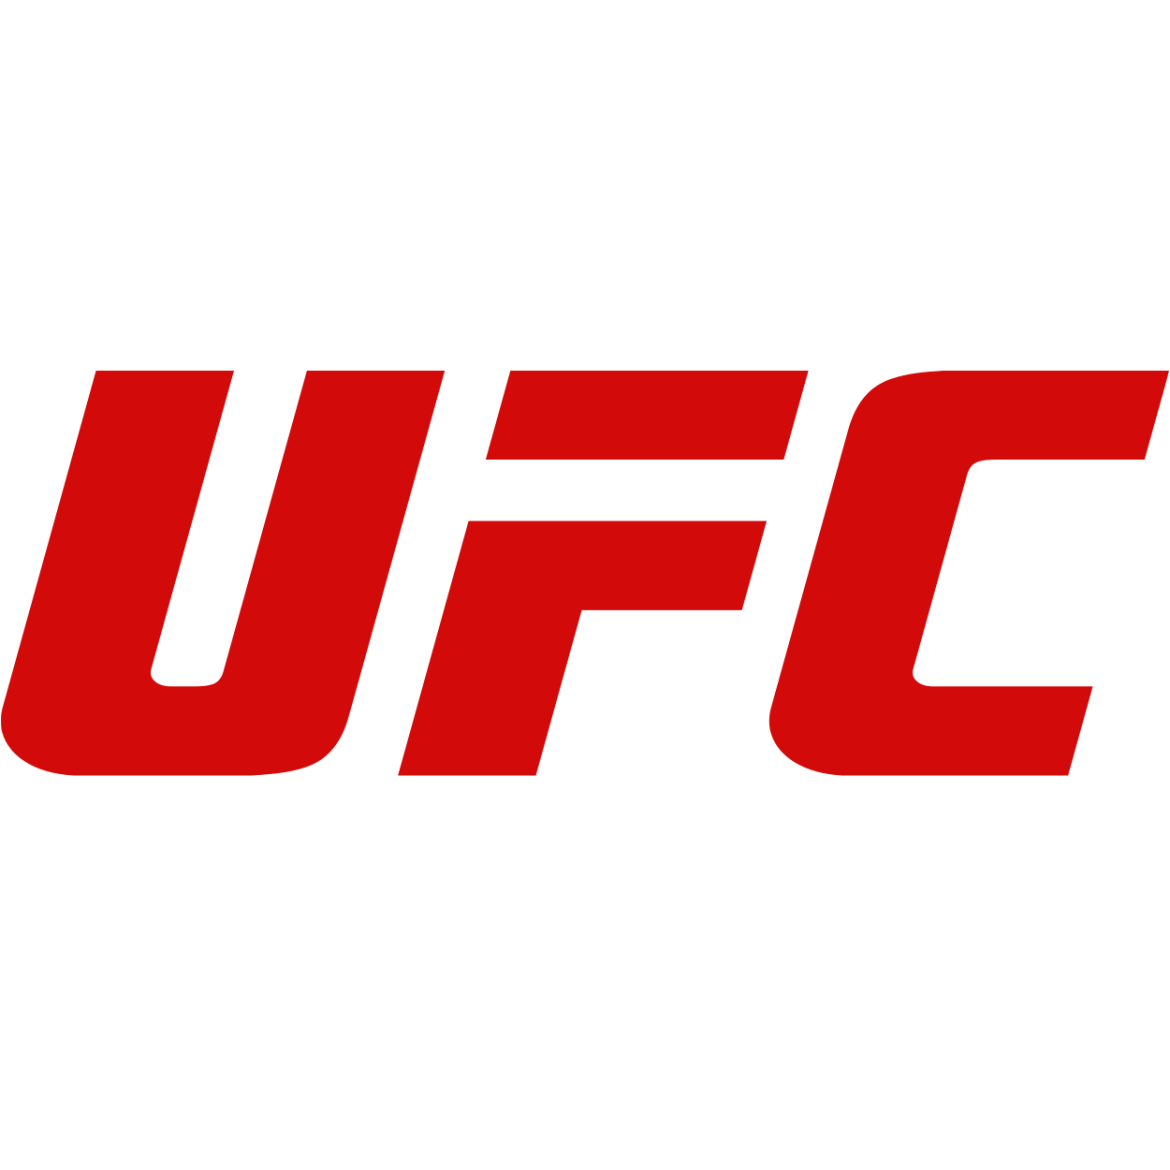 UFC's persistence to hold fight shouldn't surprise anyone